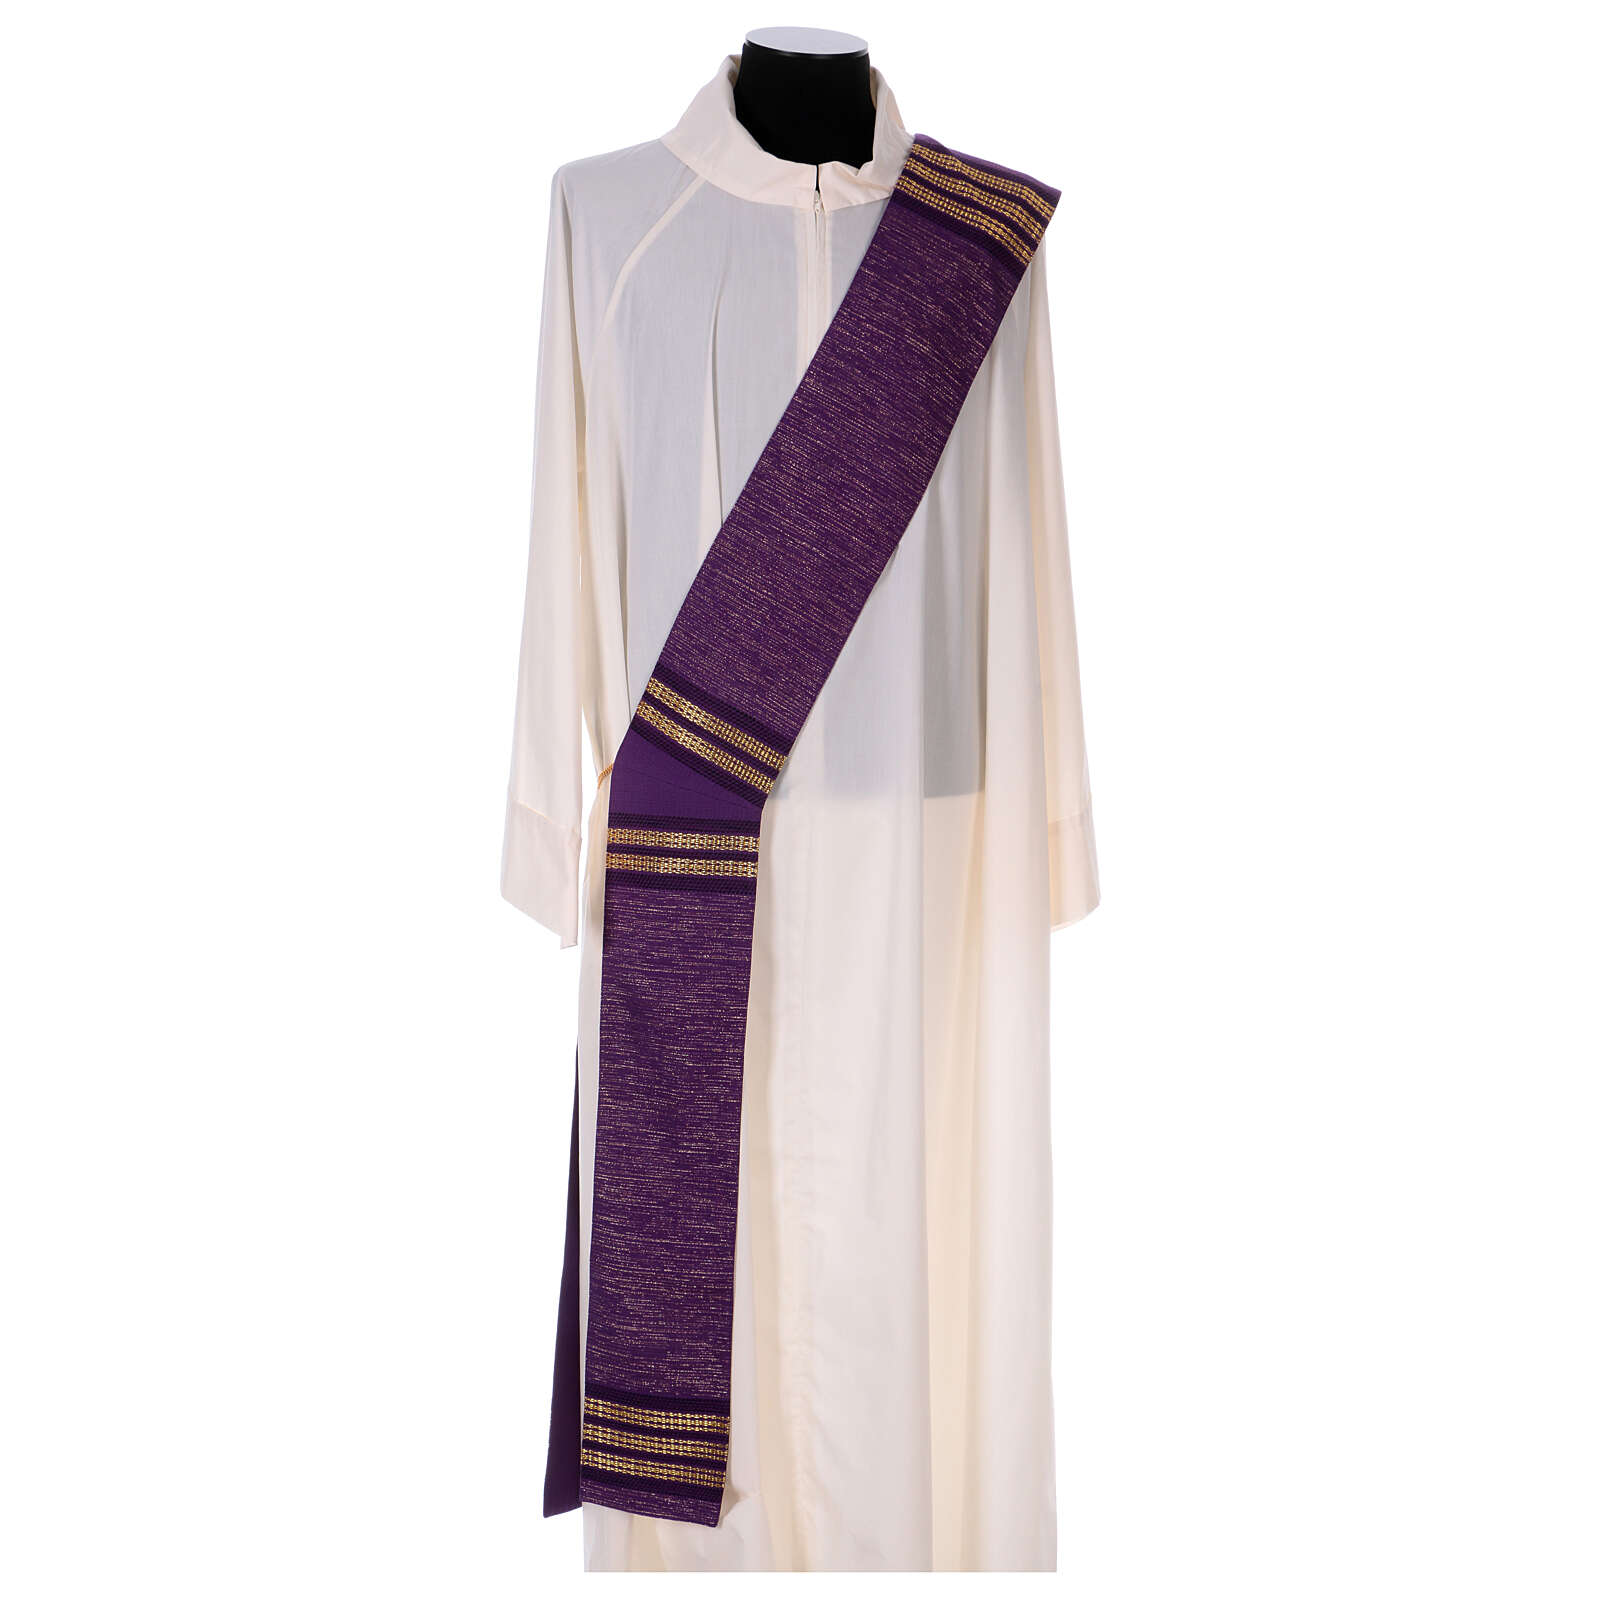 Deacon stole with golden chain detailing 64% wool 26% acrylic 10% lurex 4